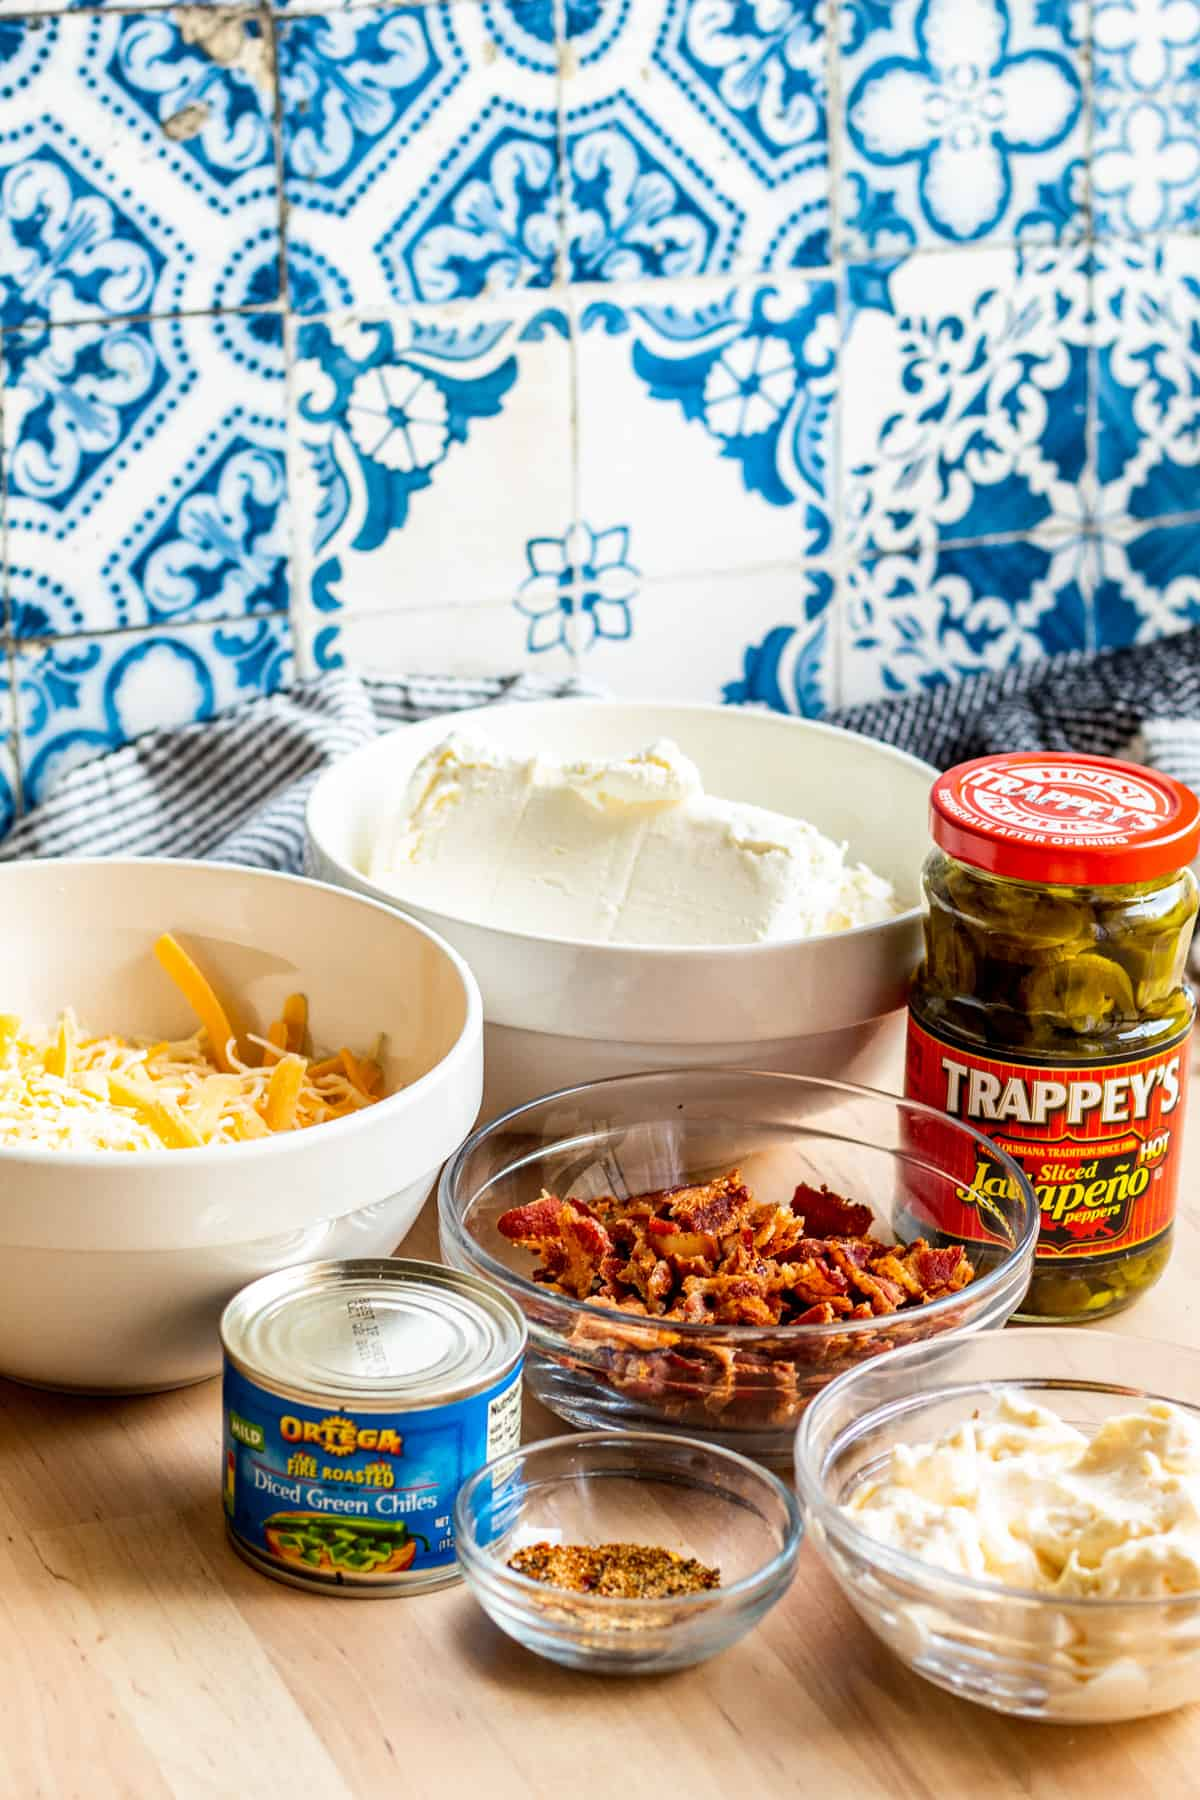 Ingredients for dip laid out on wooden table with blue and white background.